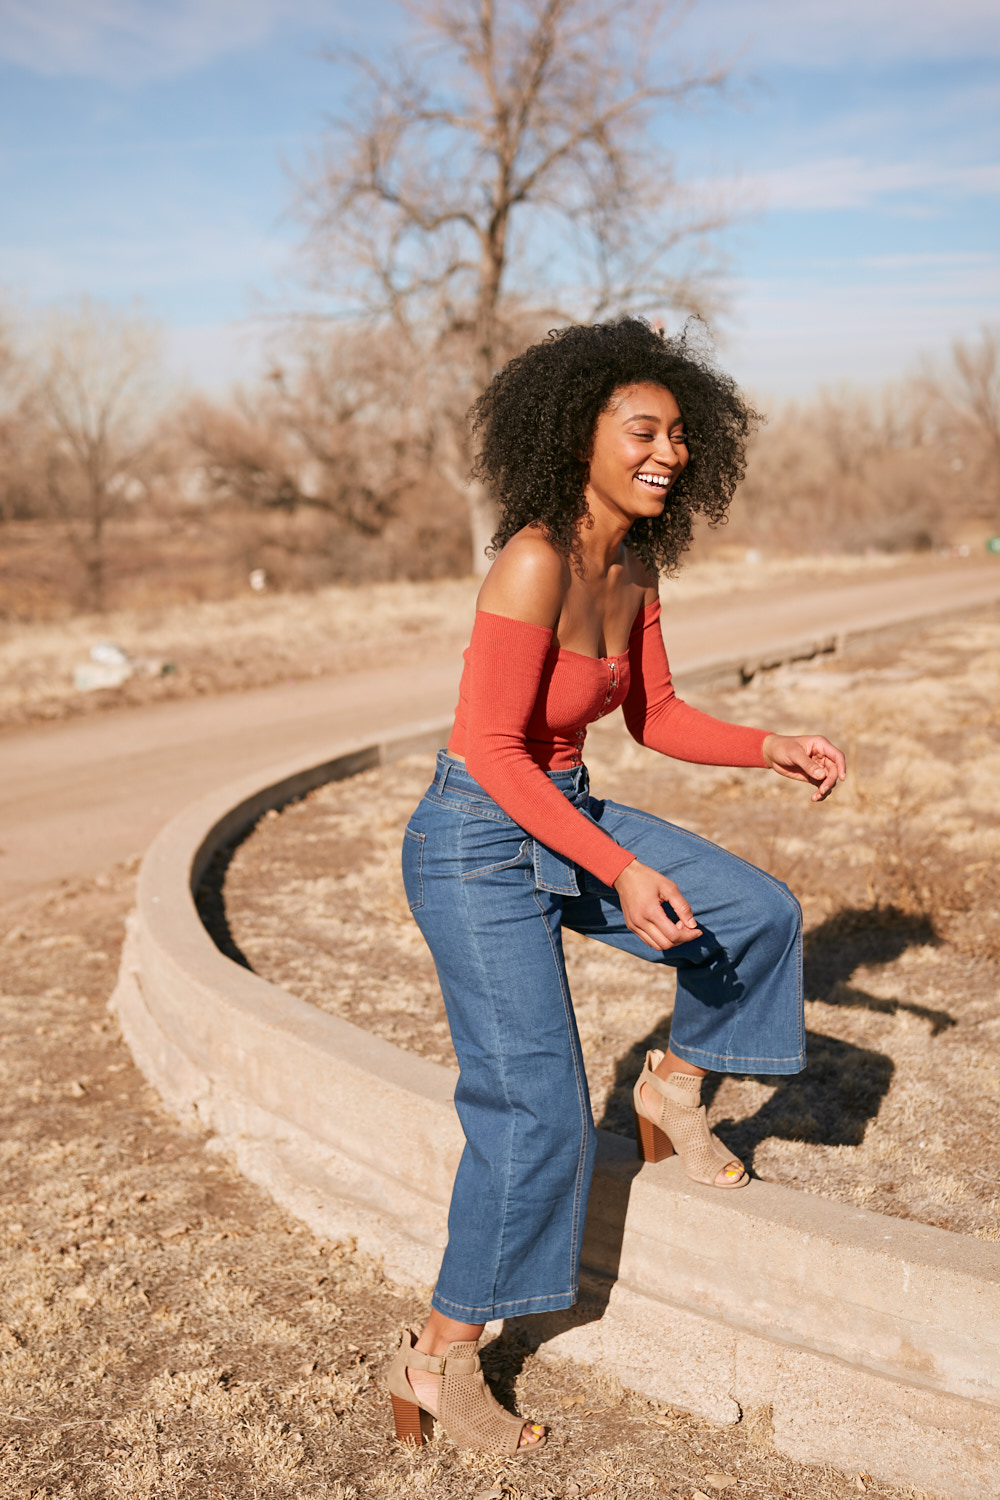 NYC Fashion Photographer | Black Model Laughing in Denver FIeld